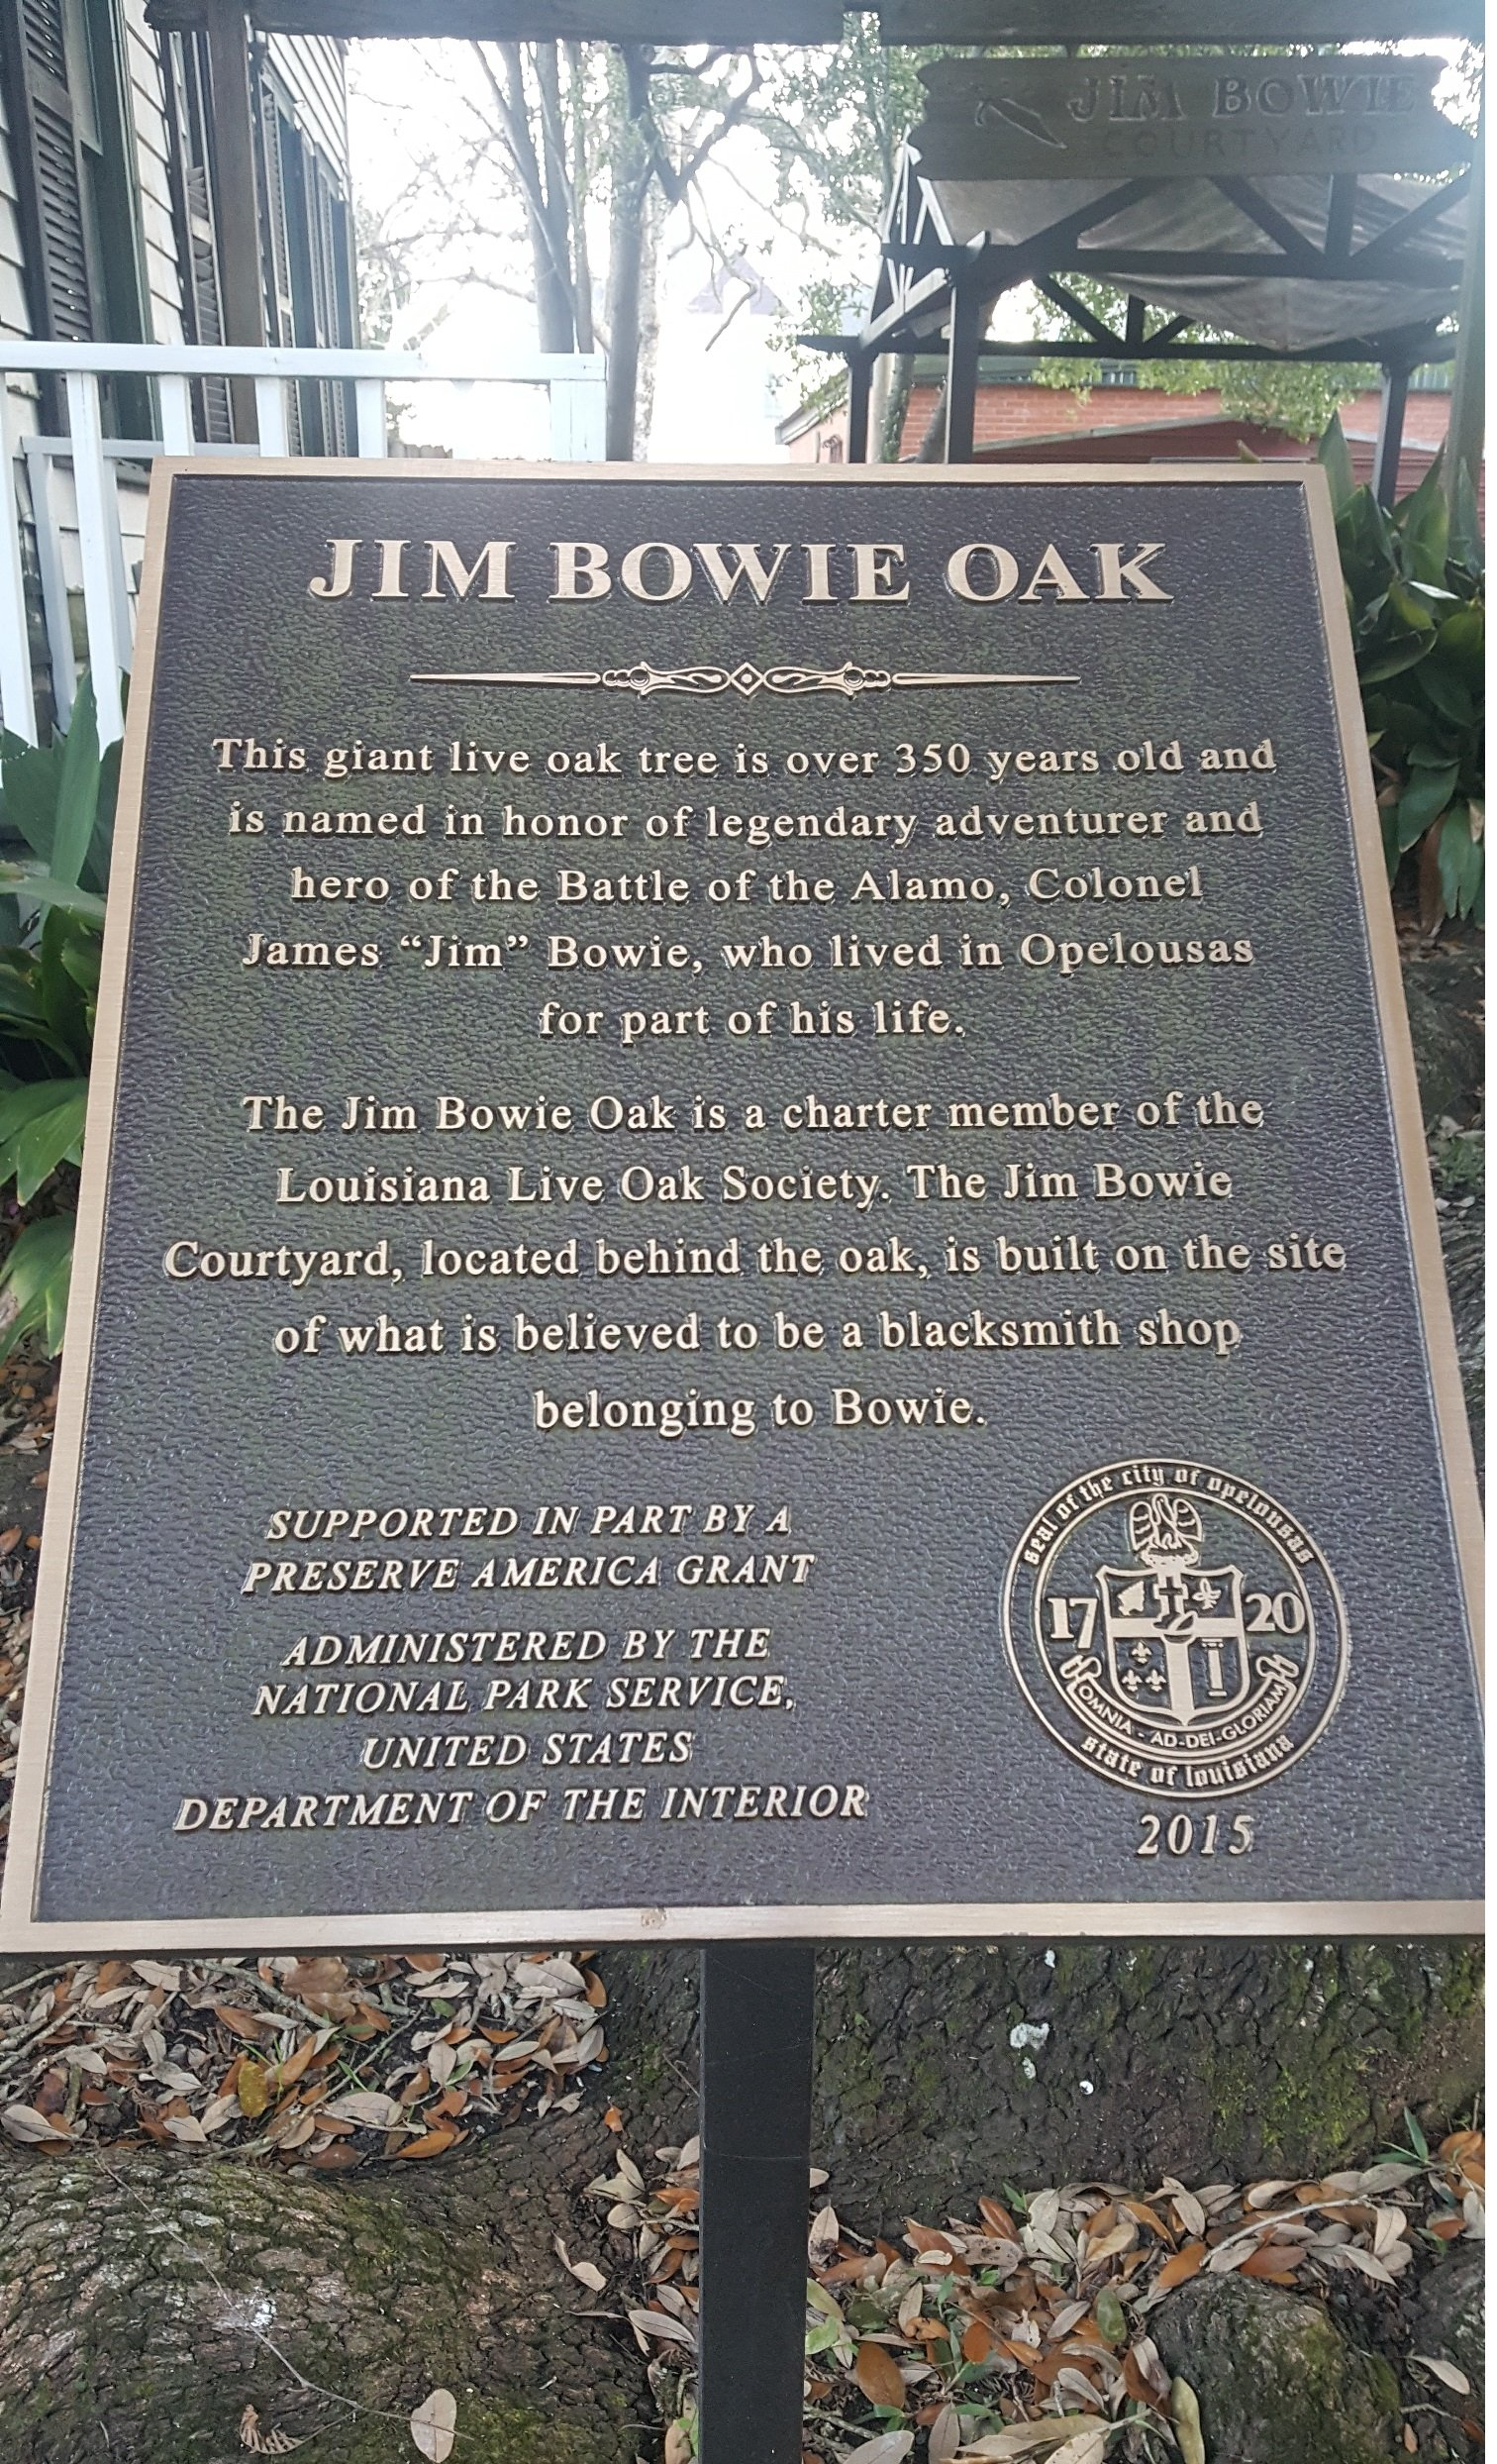 Plaque placed at the base of the tree.